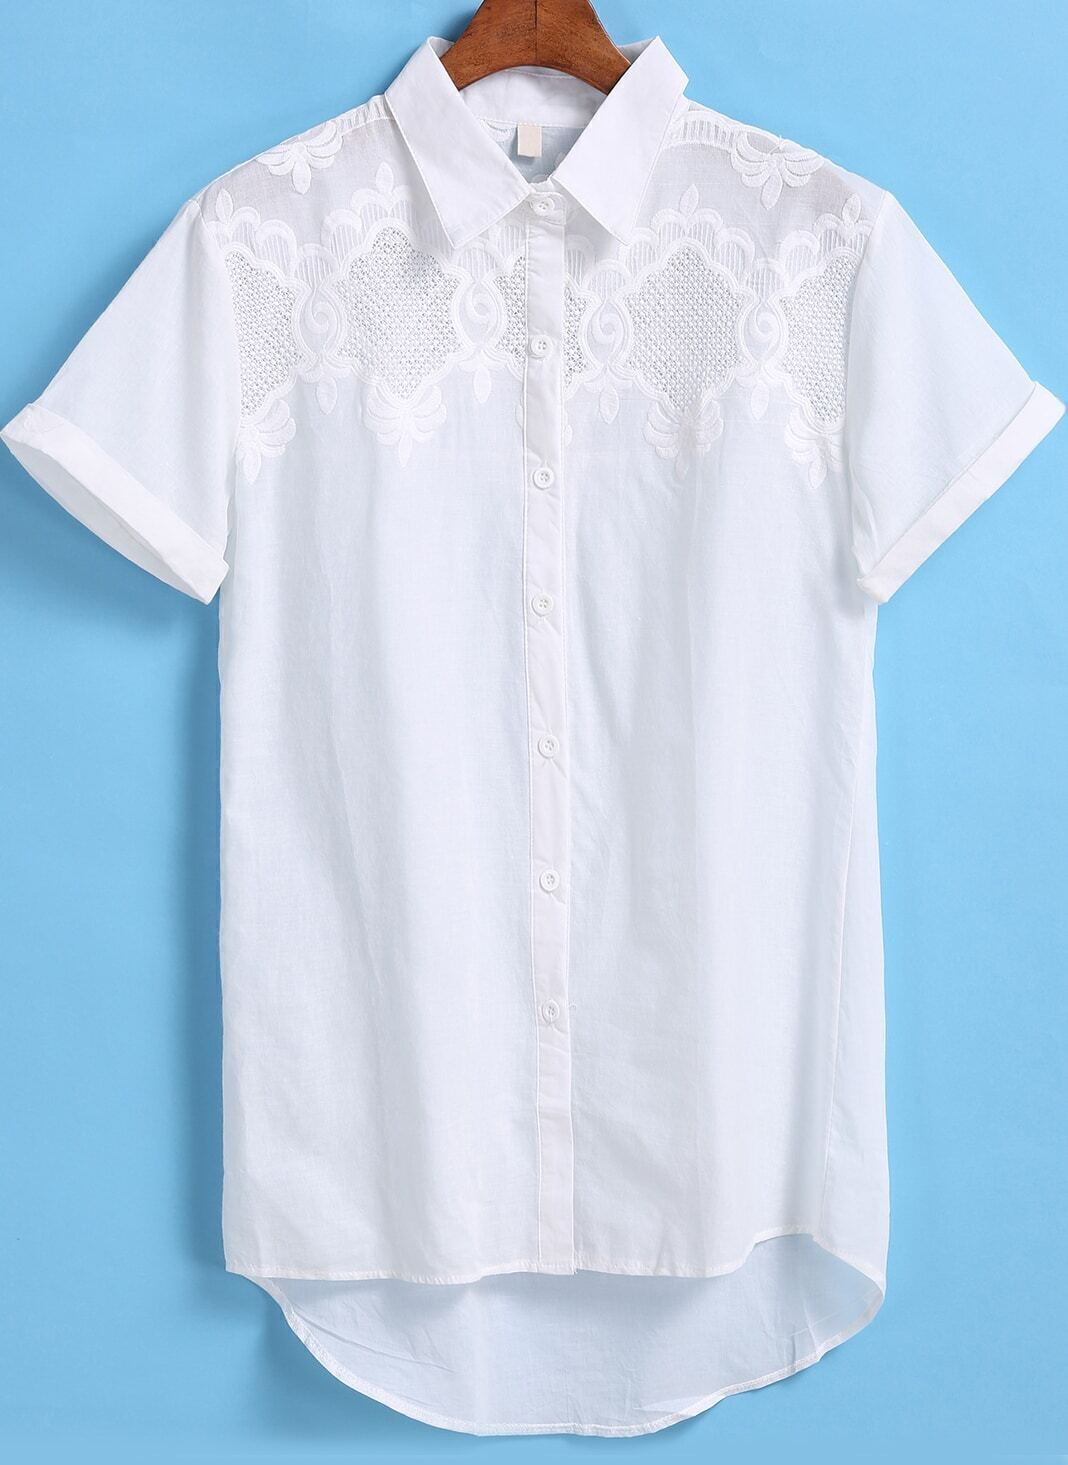 White Short Sleeve Hollow Embroidery Blouse 114